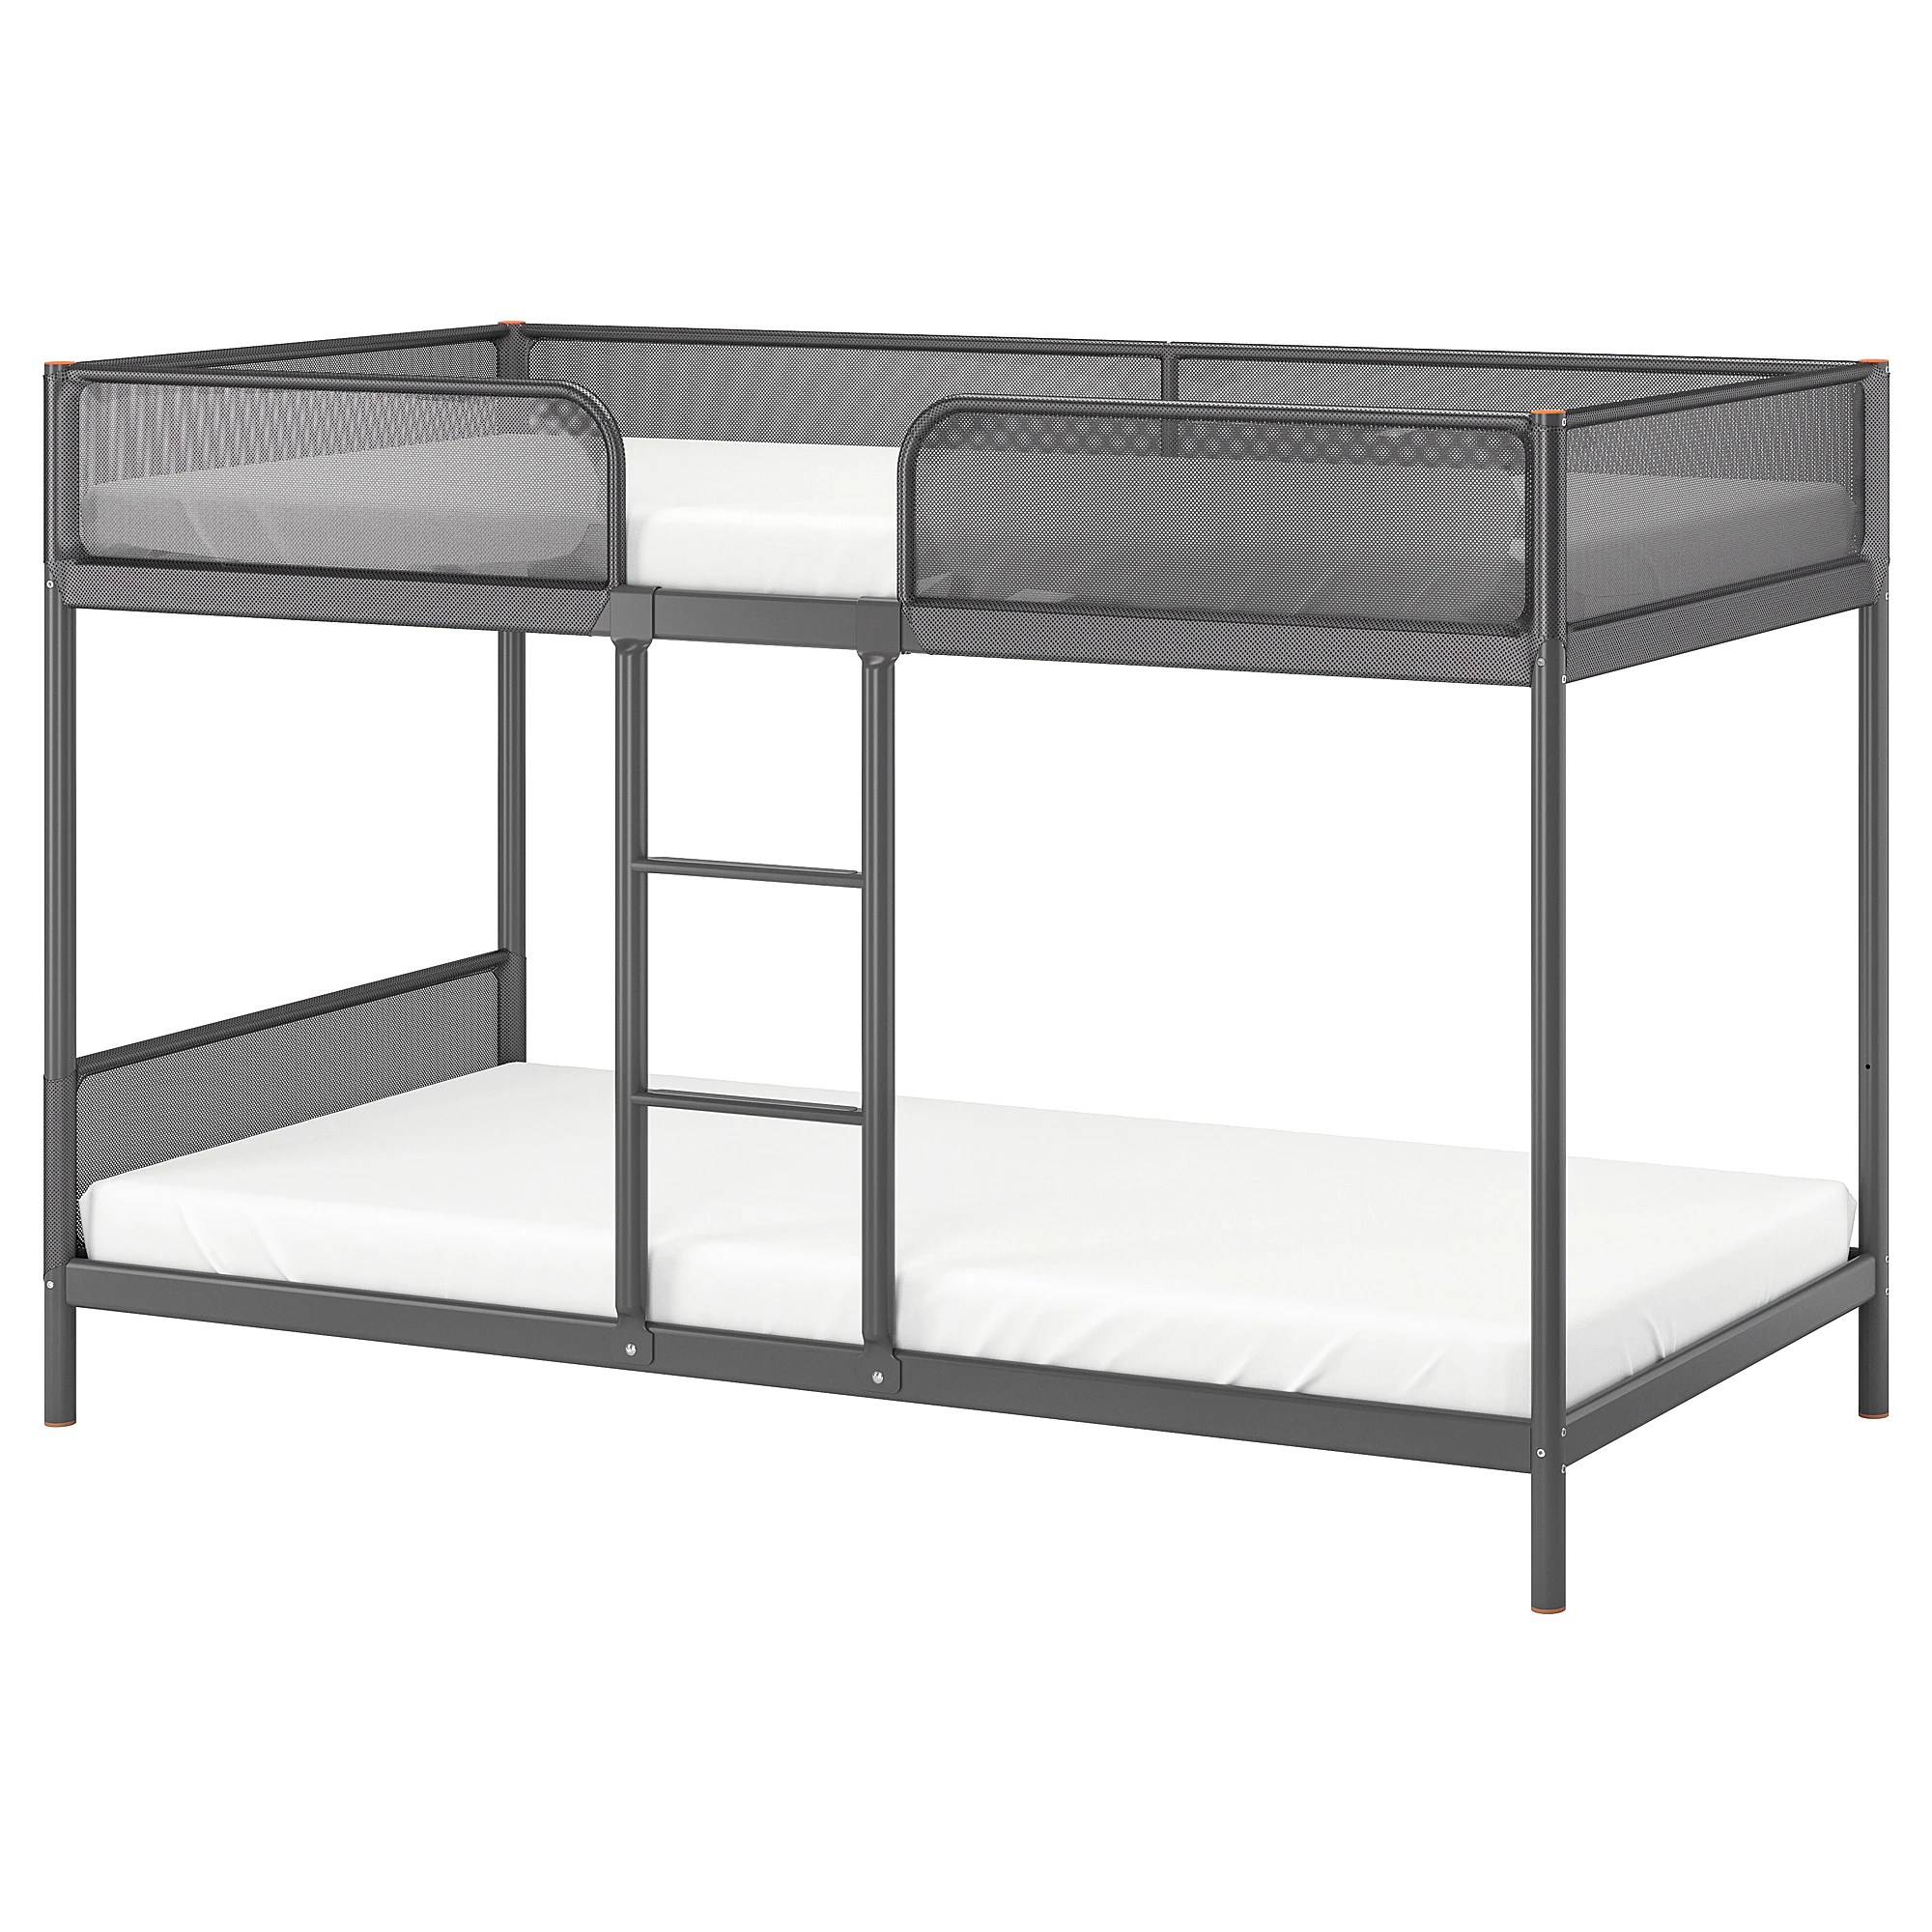 Ikea Bunk Bed Australia Tuffing Bunk Bed Frame Dark Gray